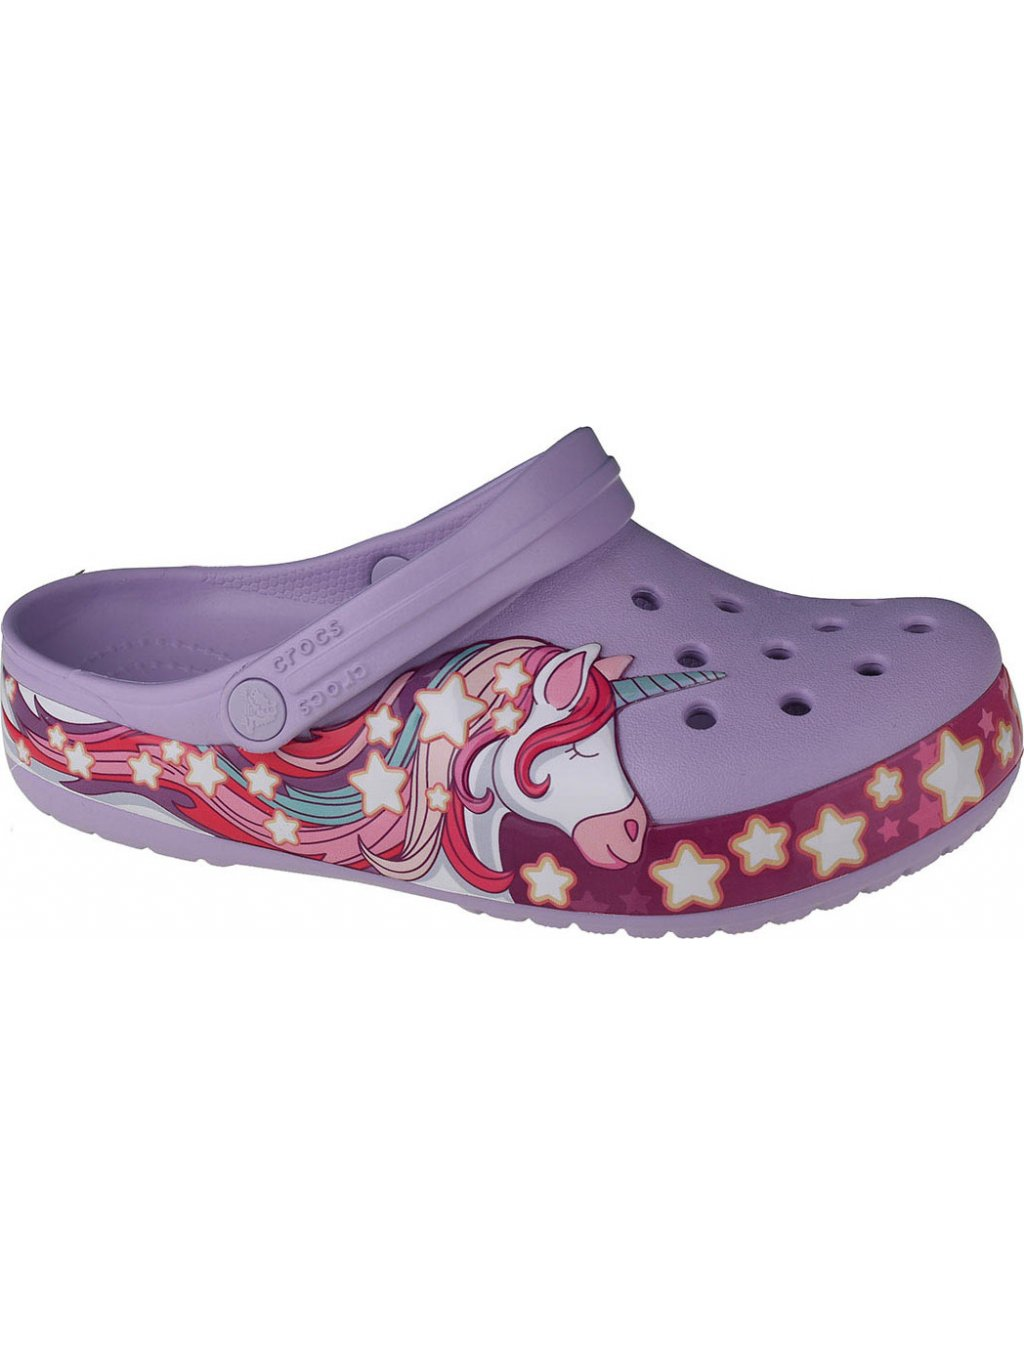 CROCS FUN LAB UNICORN BAND CLOG 206270-530